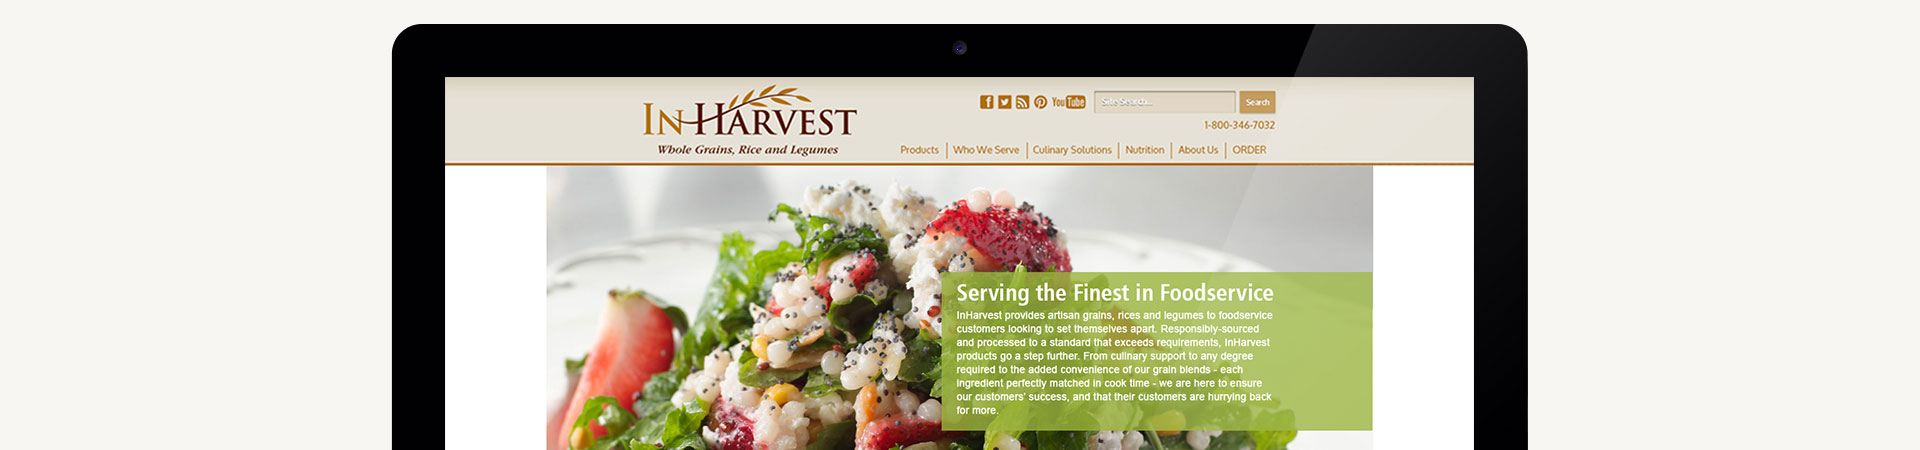 InHarvest Website Design | Macleod & Co. The Holistic Marketing Agency Minneapolis